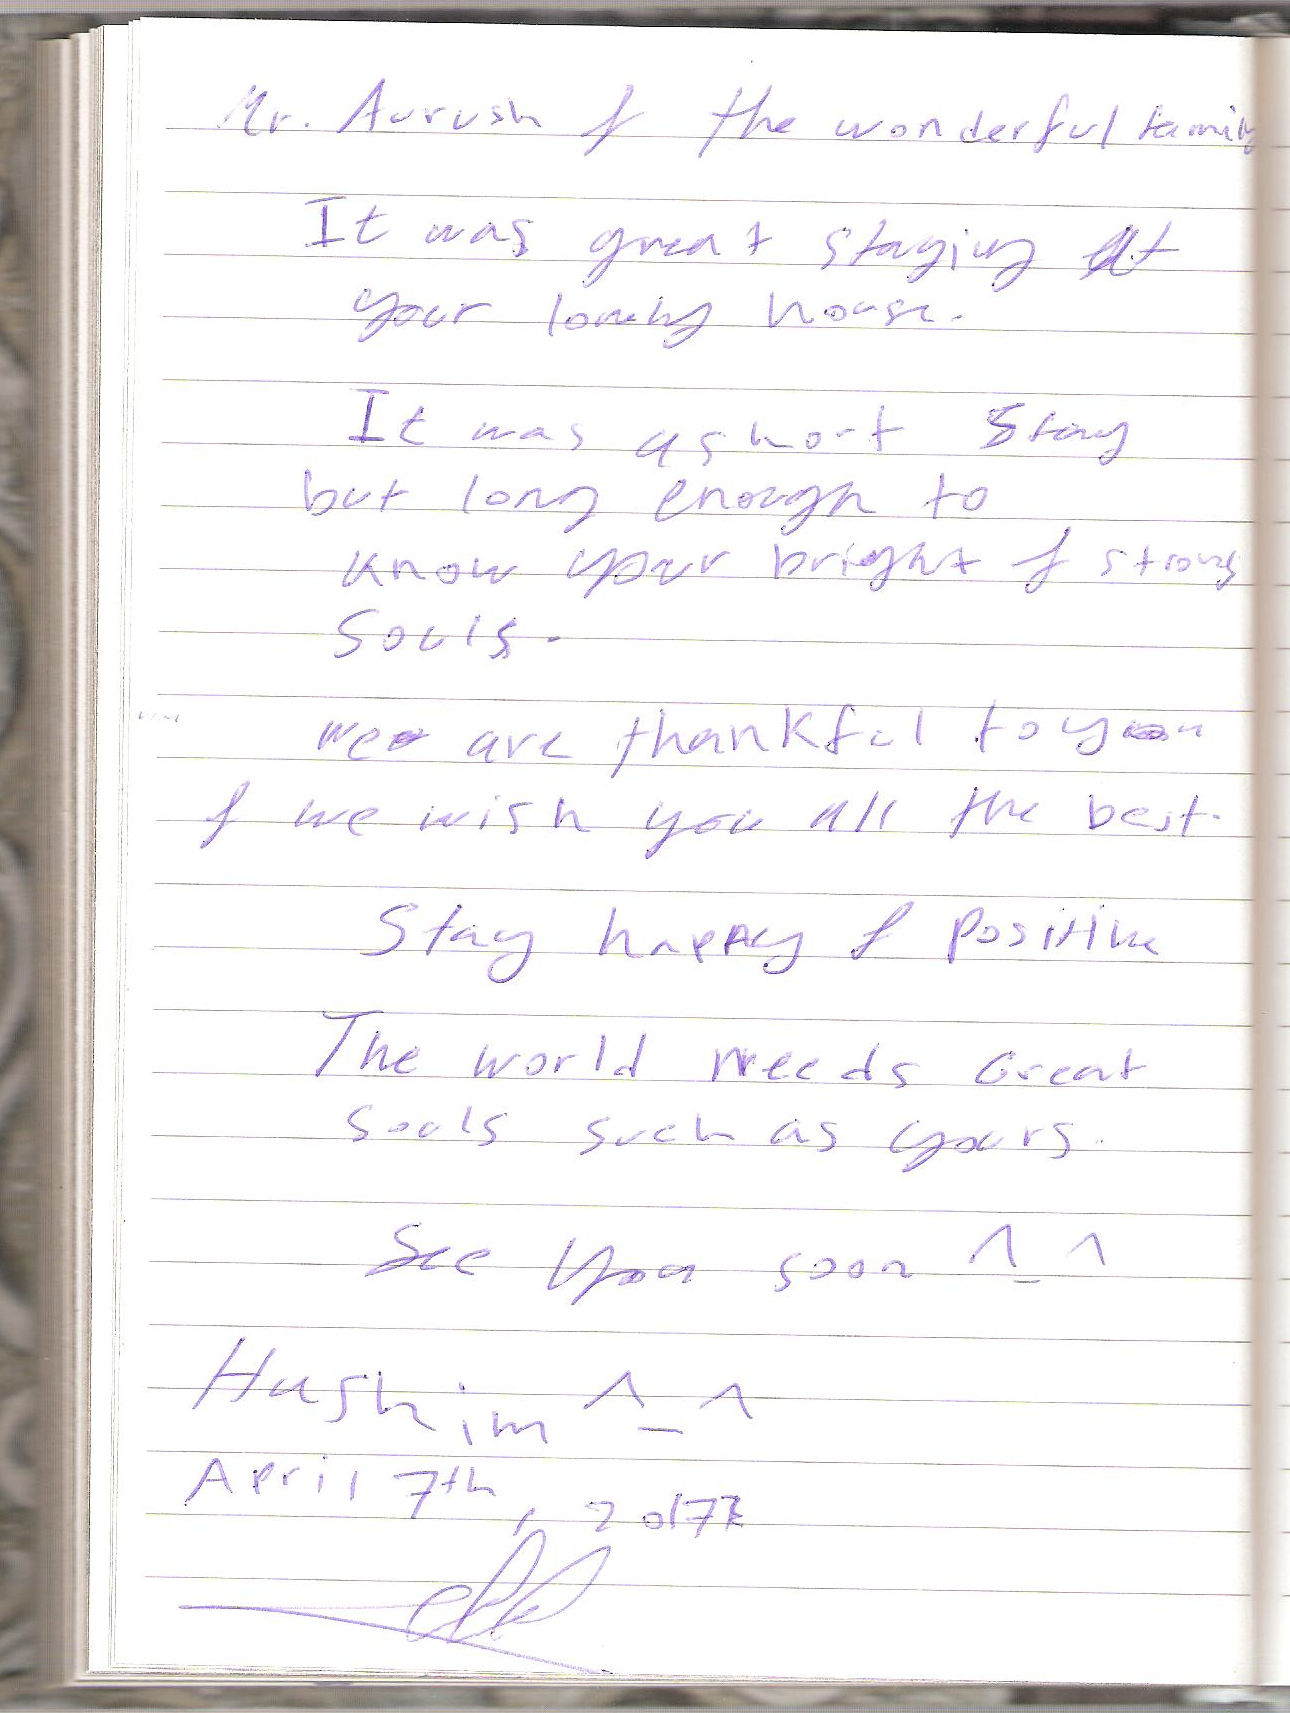 Handwritten Comments In The Guest Book, page 80